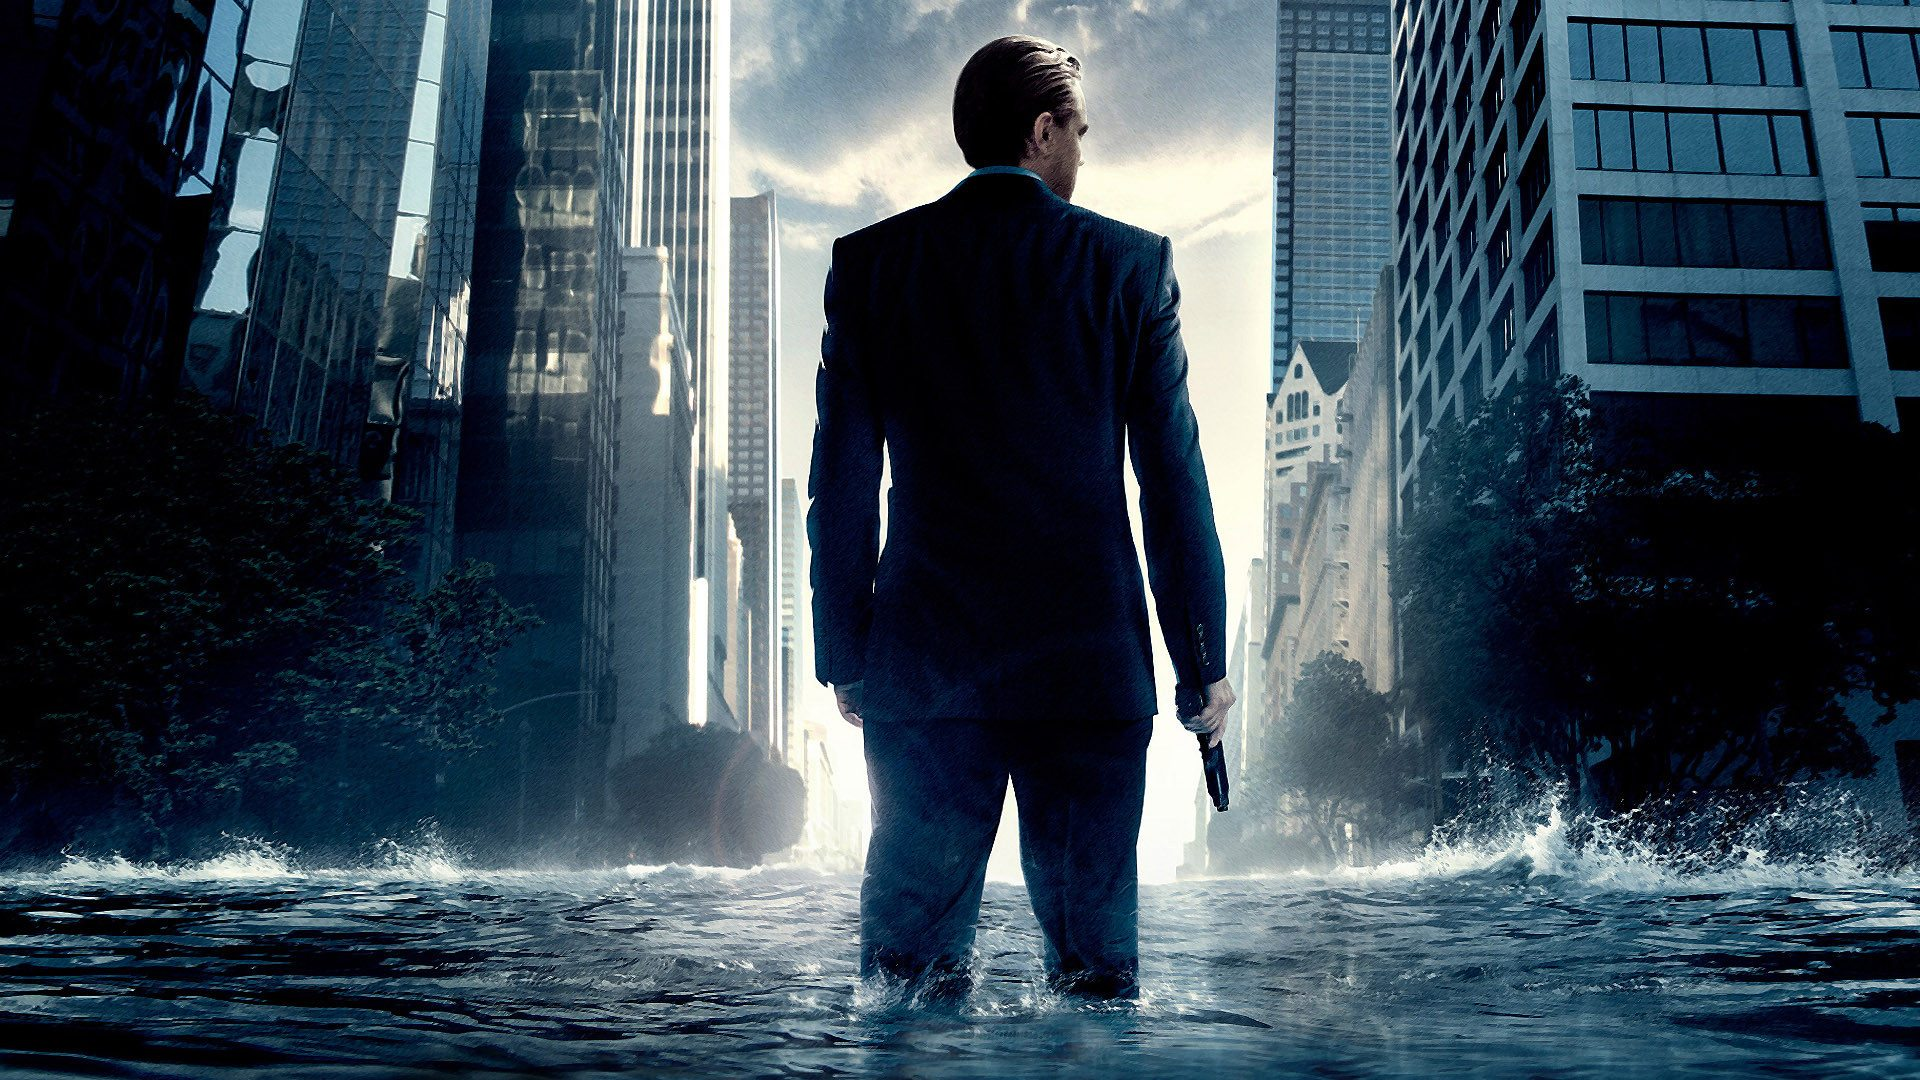 Inception Christopher Nolan perception of time manipulation Memento Tenet trailer